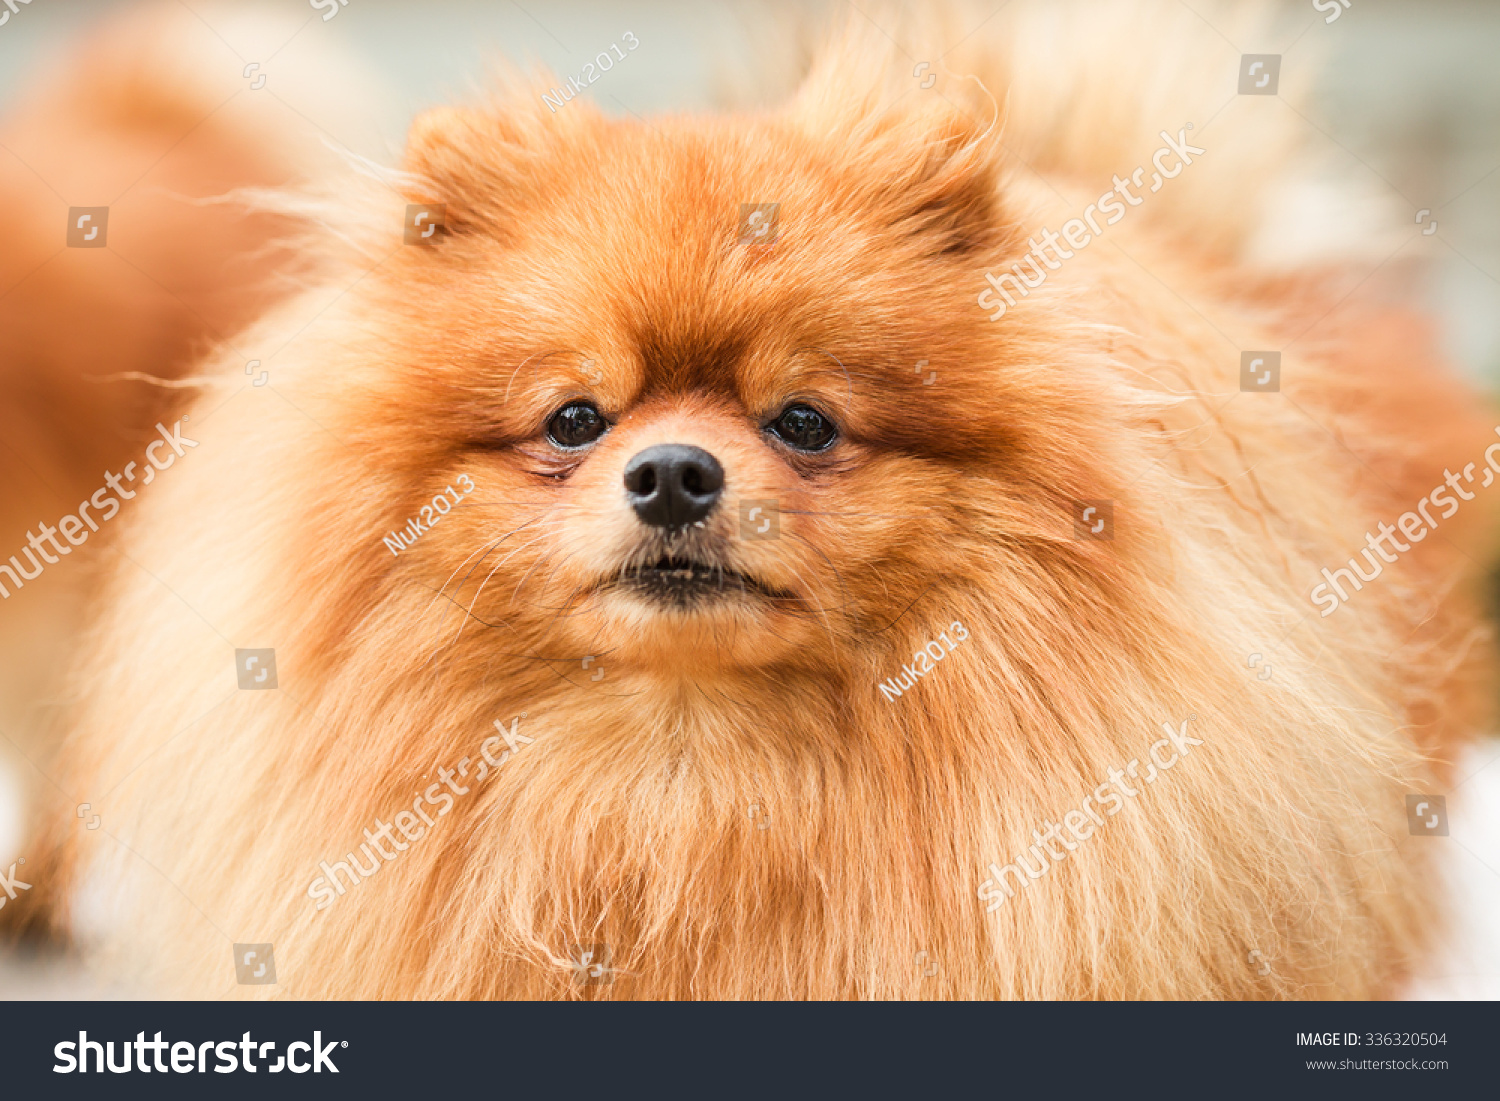 Brown pomeranian puppy dog #336320504